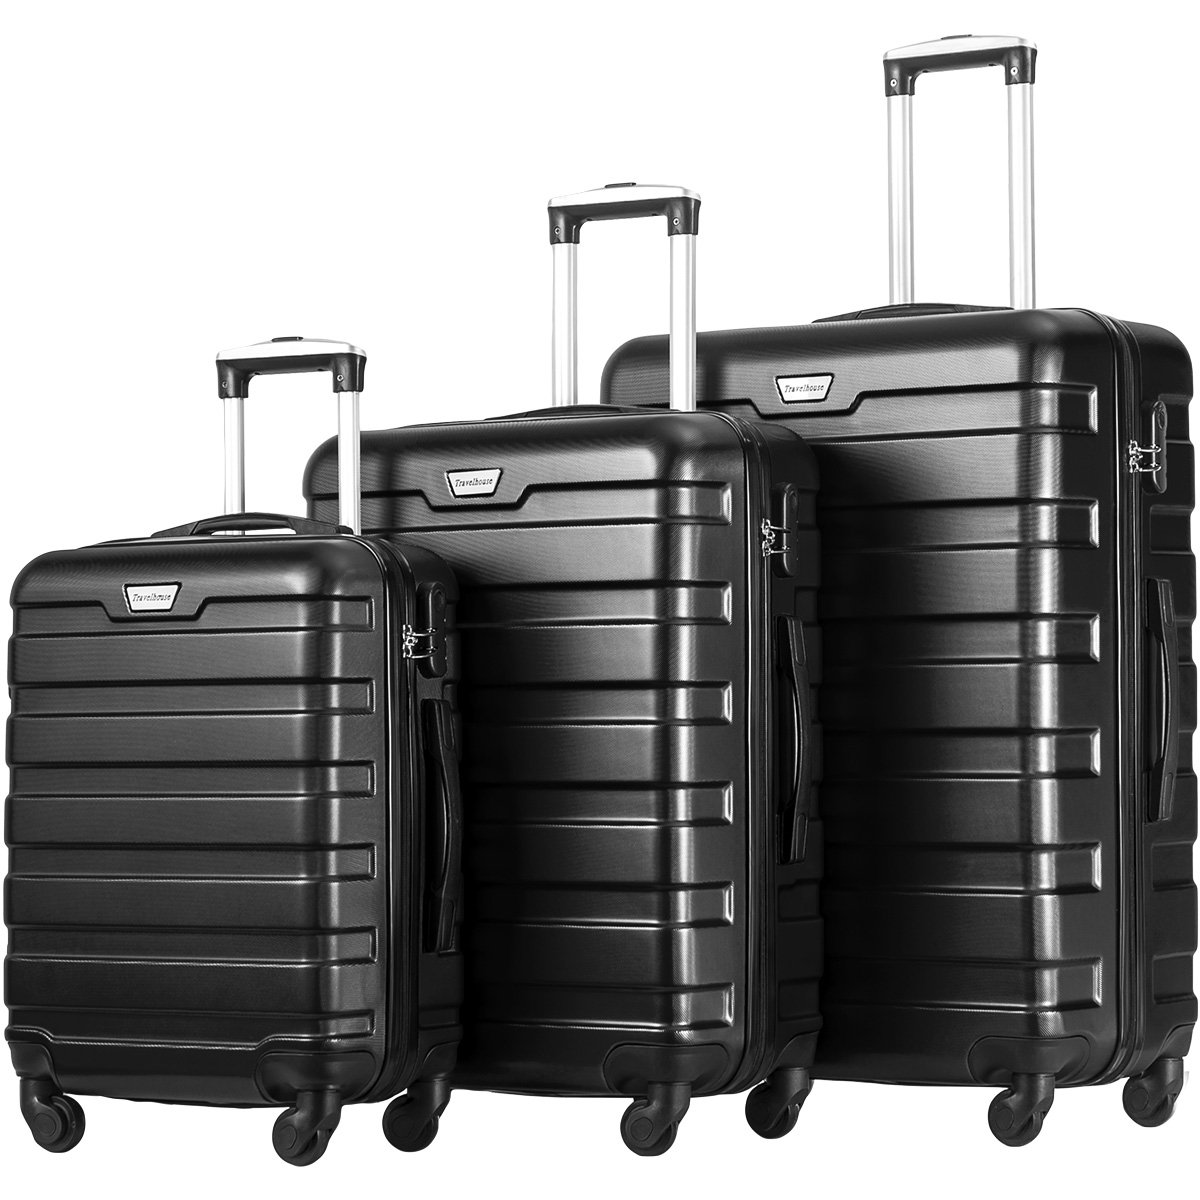 Merax Travelhouse Luggage 3 Piece Luggage Set Suitcase by Merax